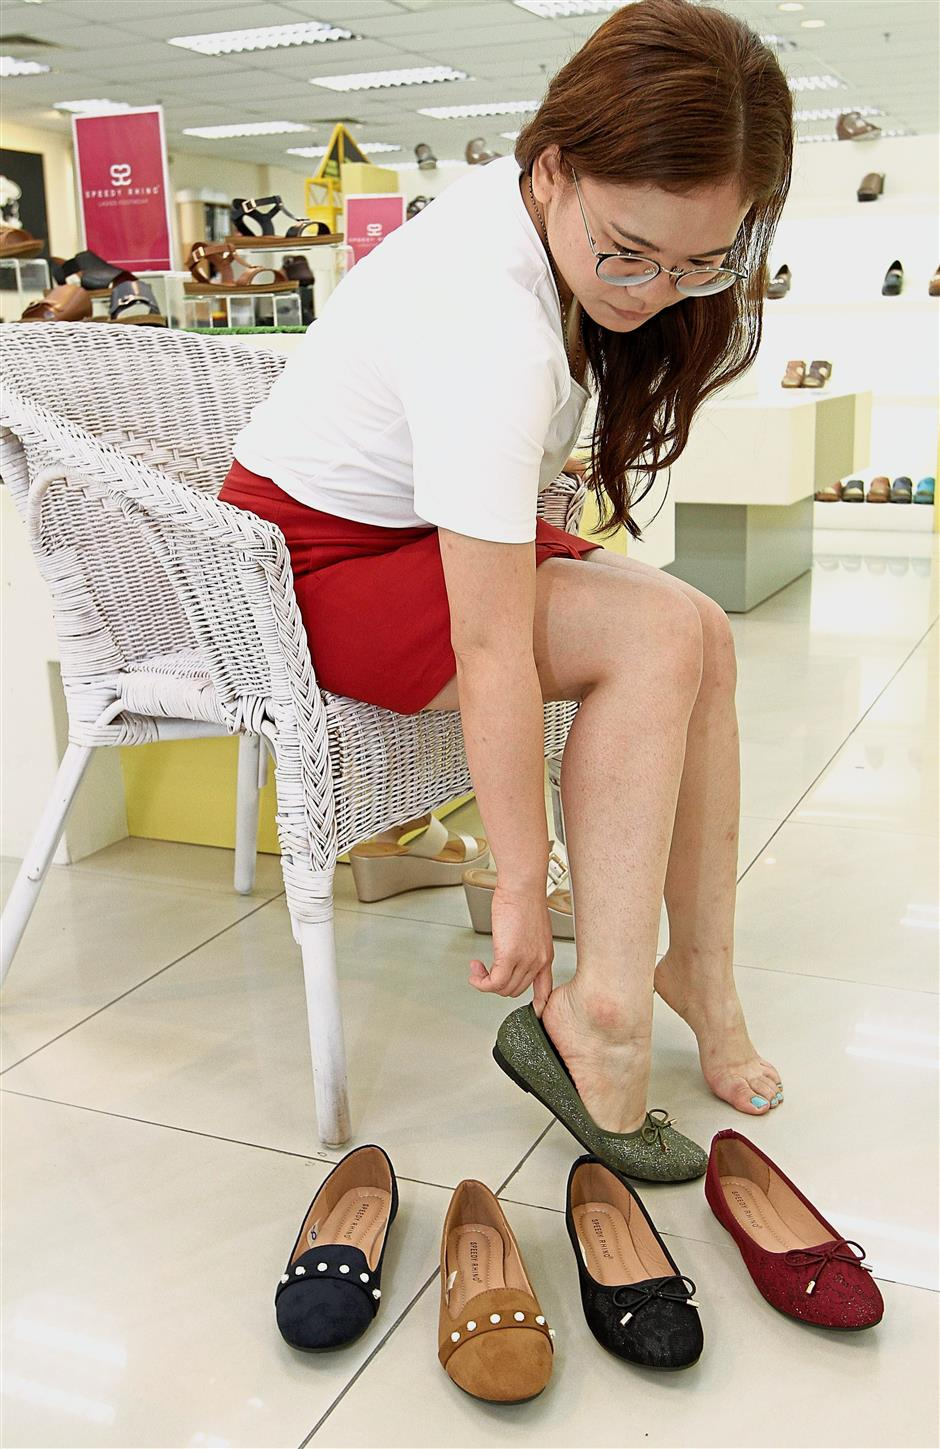 Sales driver: Women's shoes currently make up the bulk of its sales, contributing 70 to turnover.